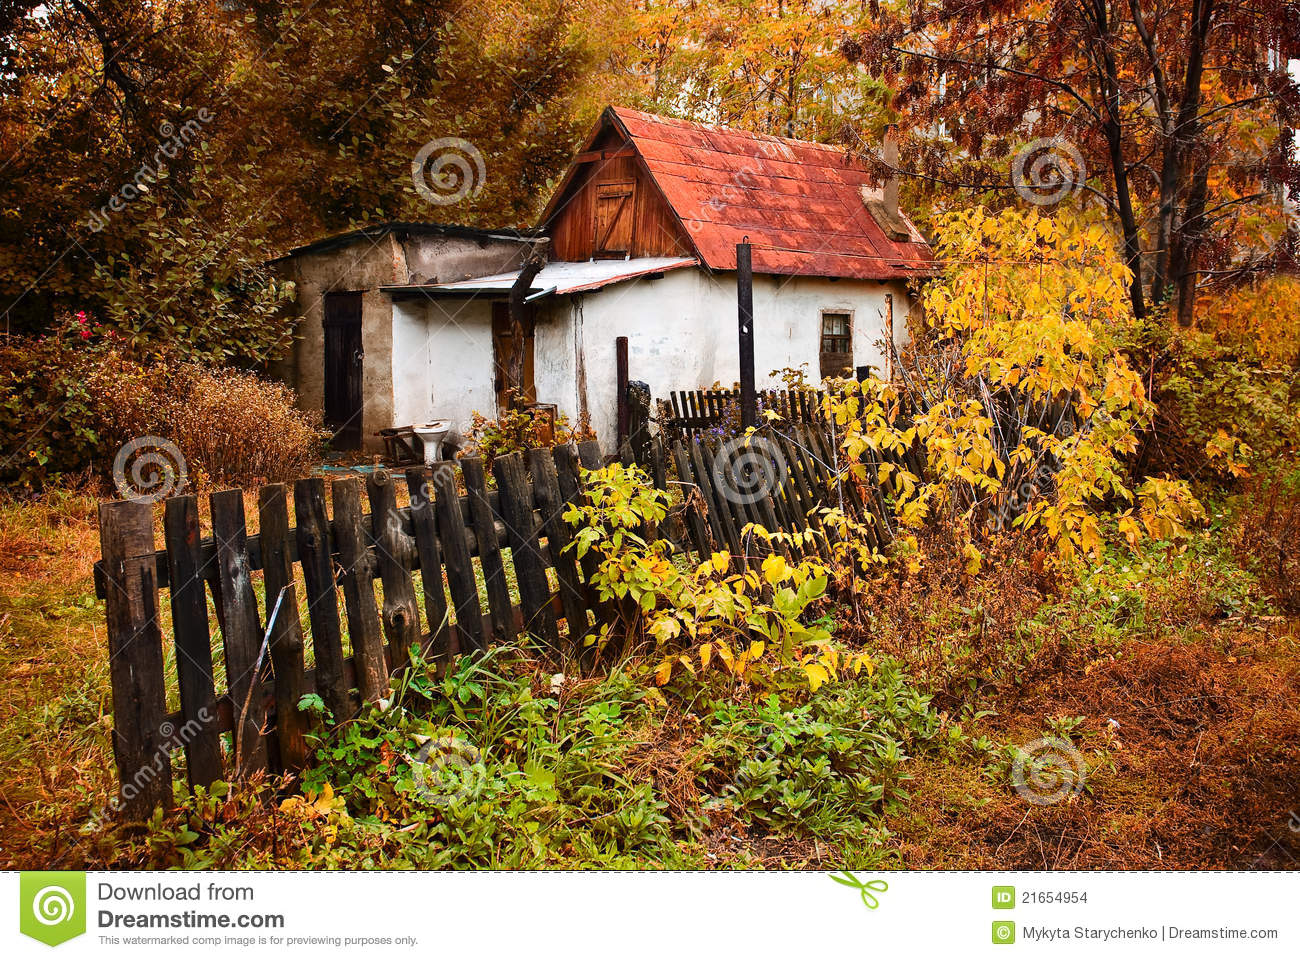 Fall Wallpaper Themes Small House In The Autumn Forest In The Village Stock